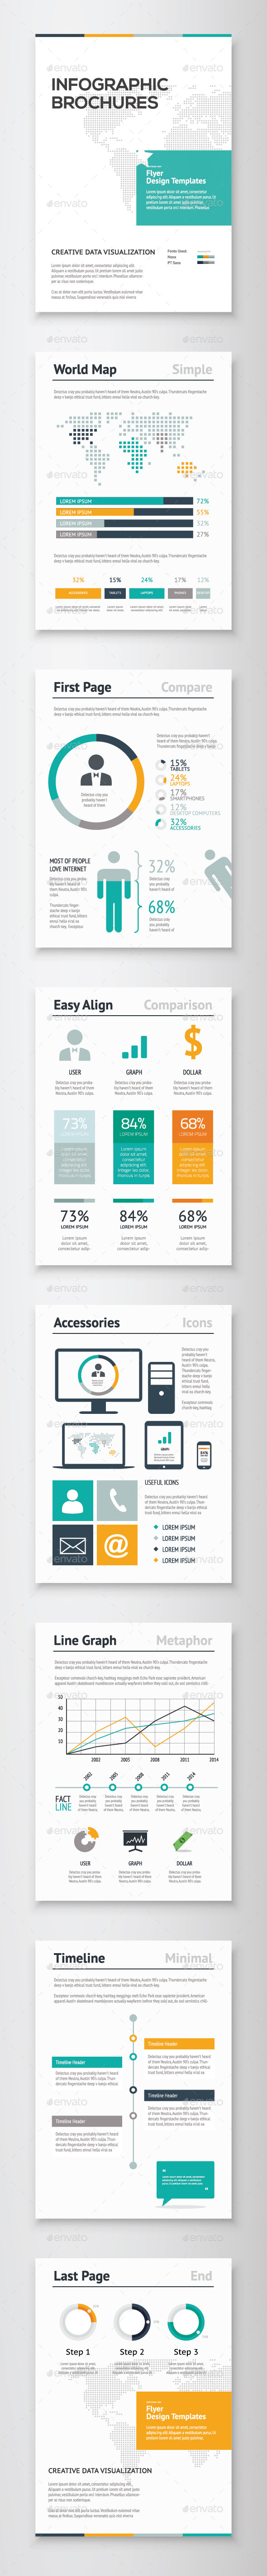 GraphicRiver Infographic Brochure Vector Elements Kit 2 10086249